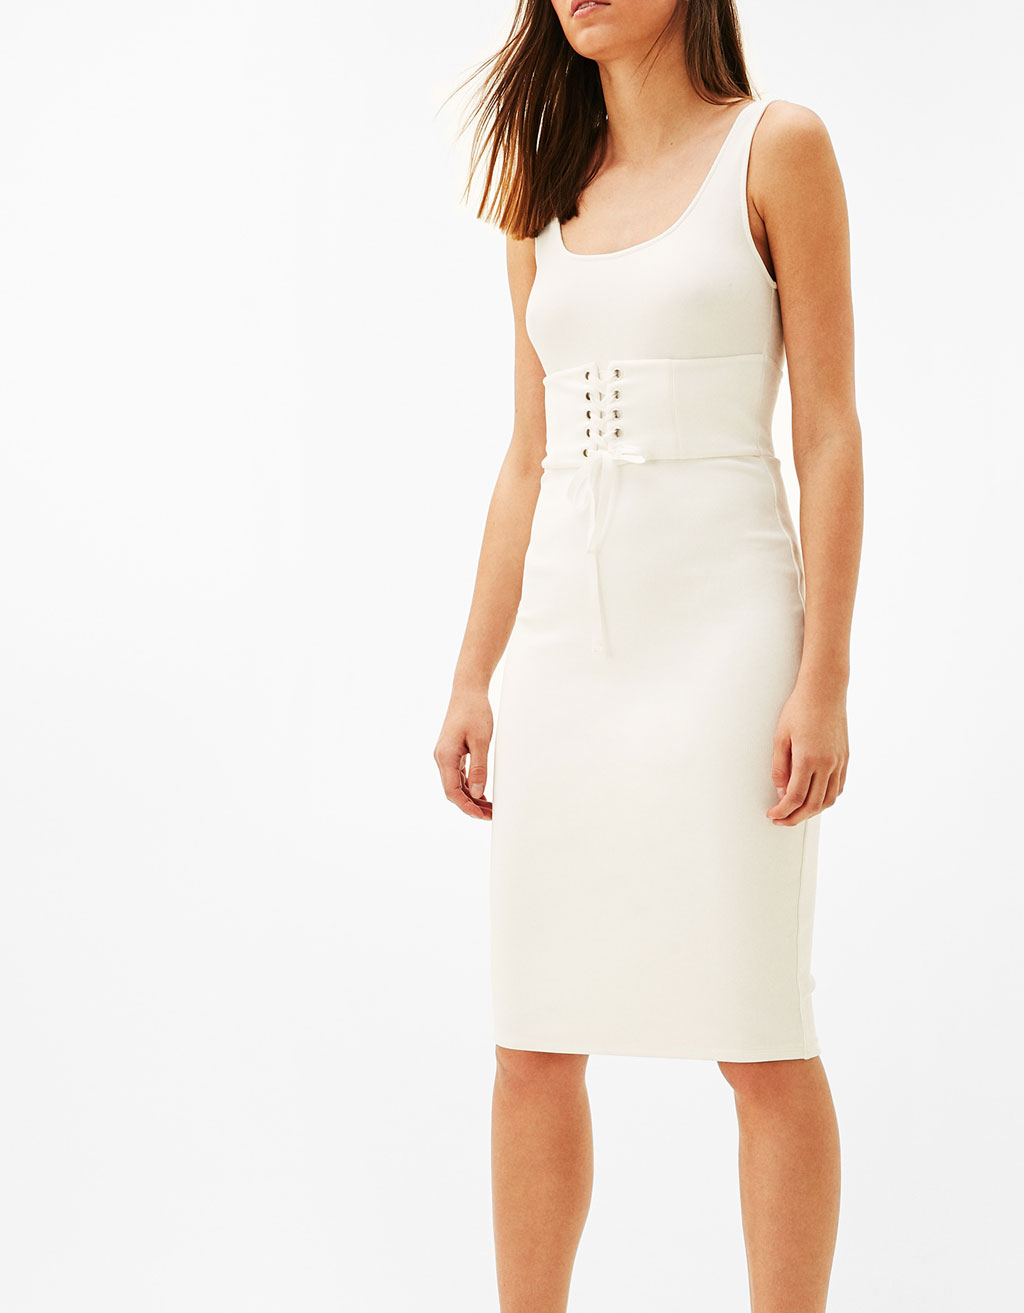 Strappy corset midi dress